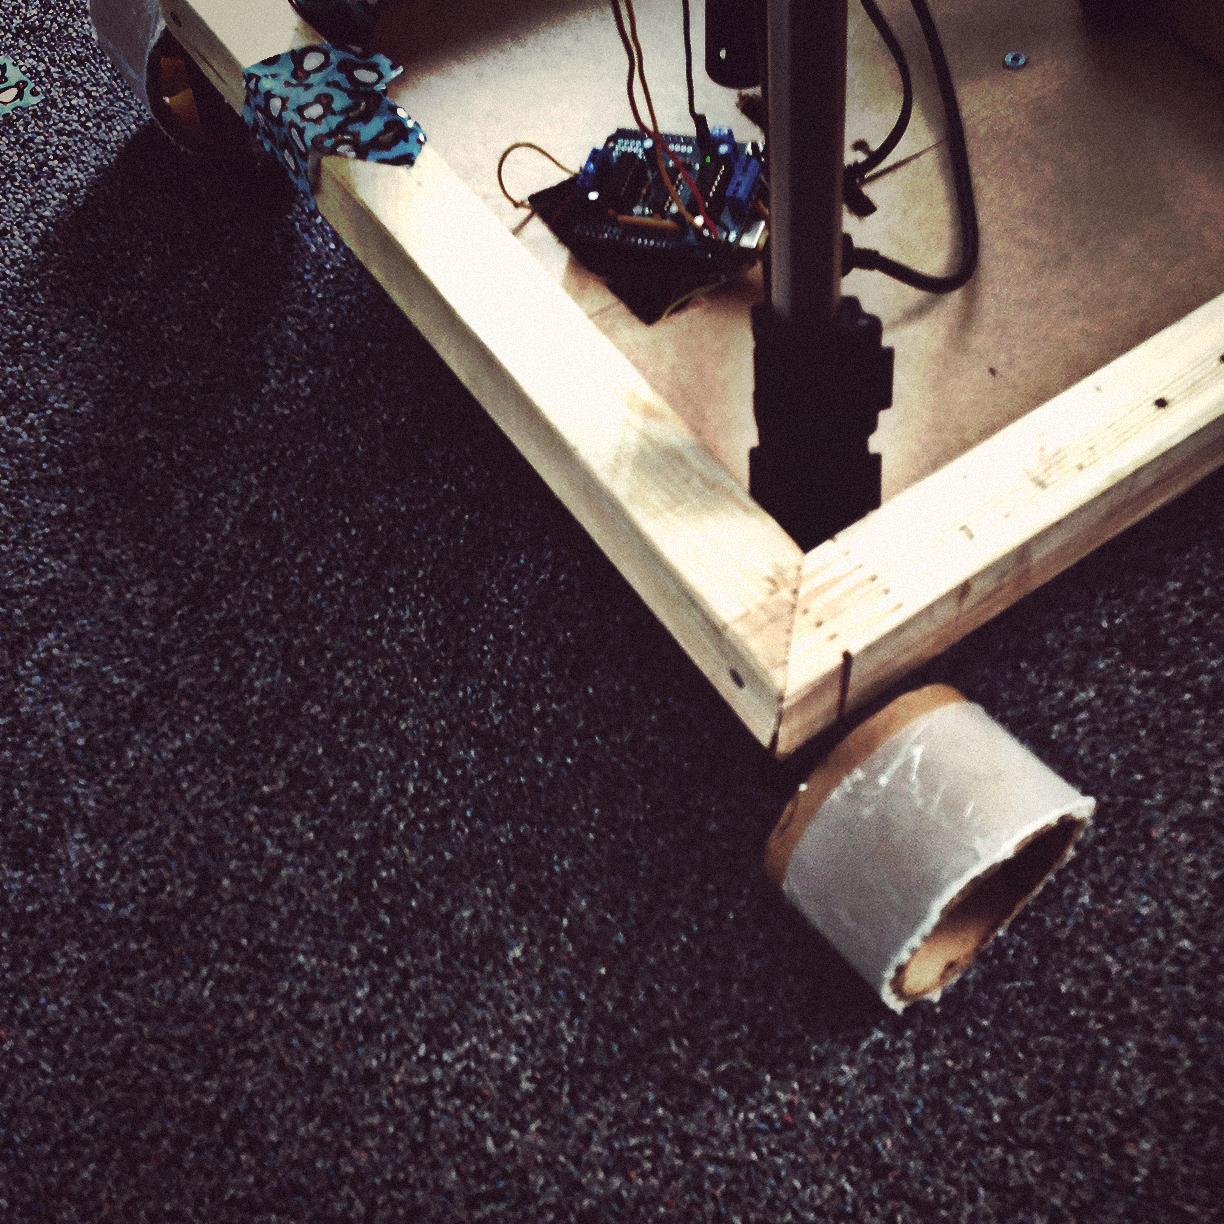 Shoot day. When the original wheels failed to gain traction on our carpet, we had to improvise.